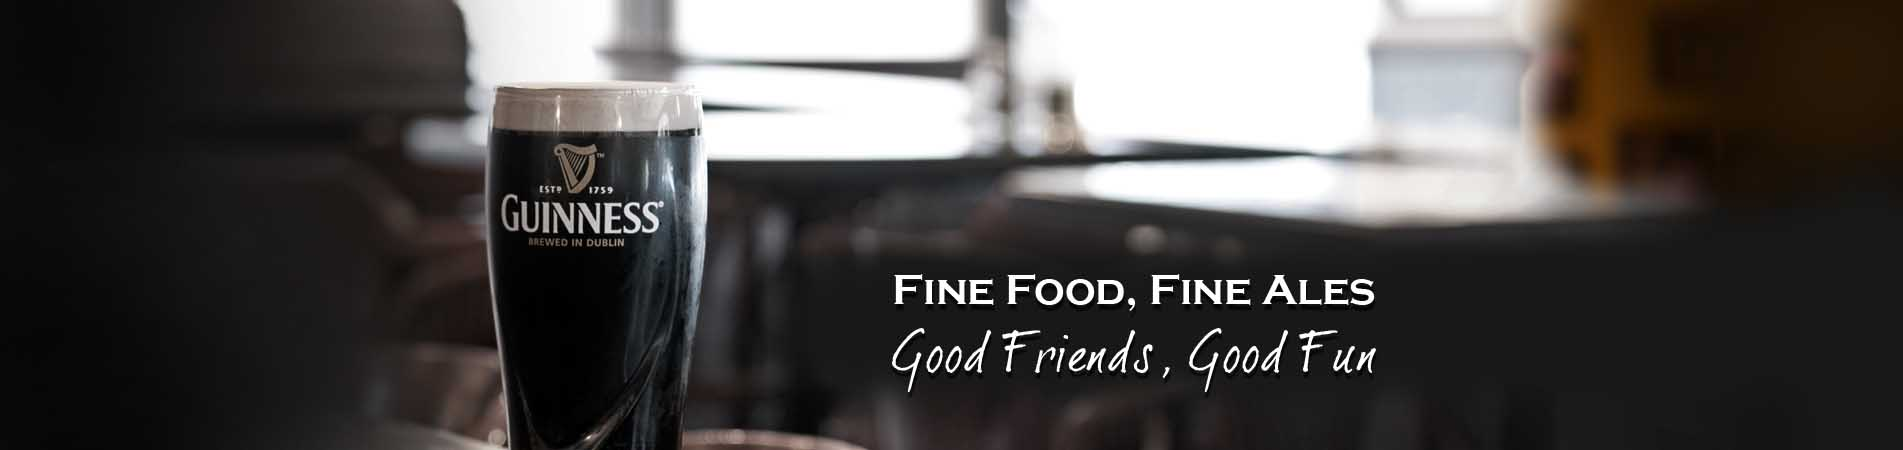 Fine food, fine ales. Good friends, good fun.